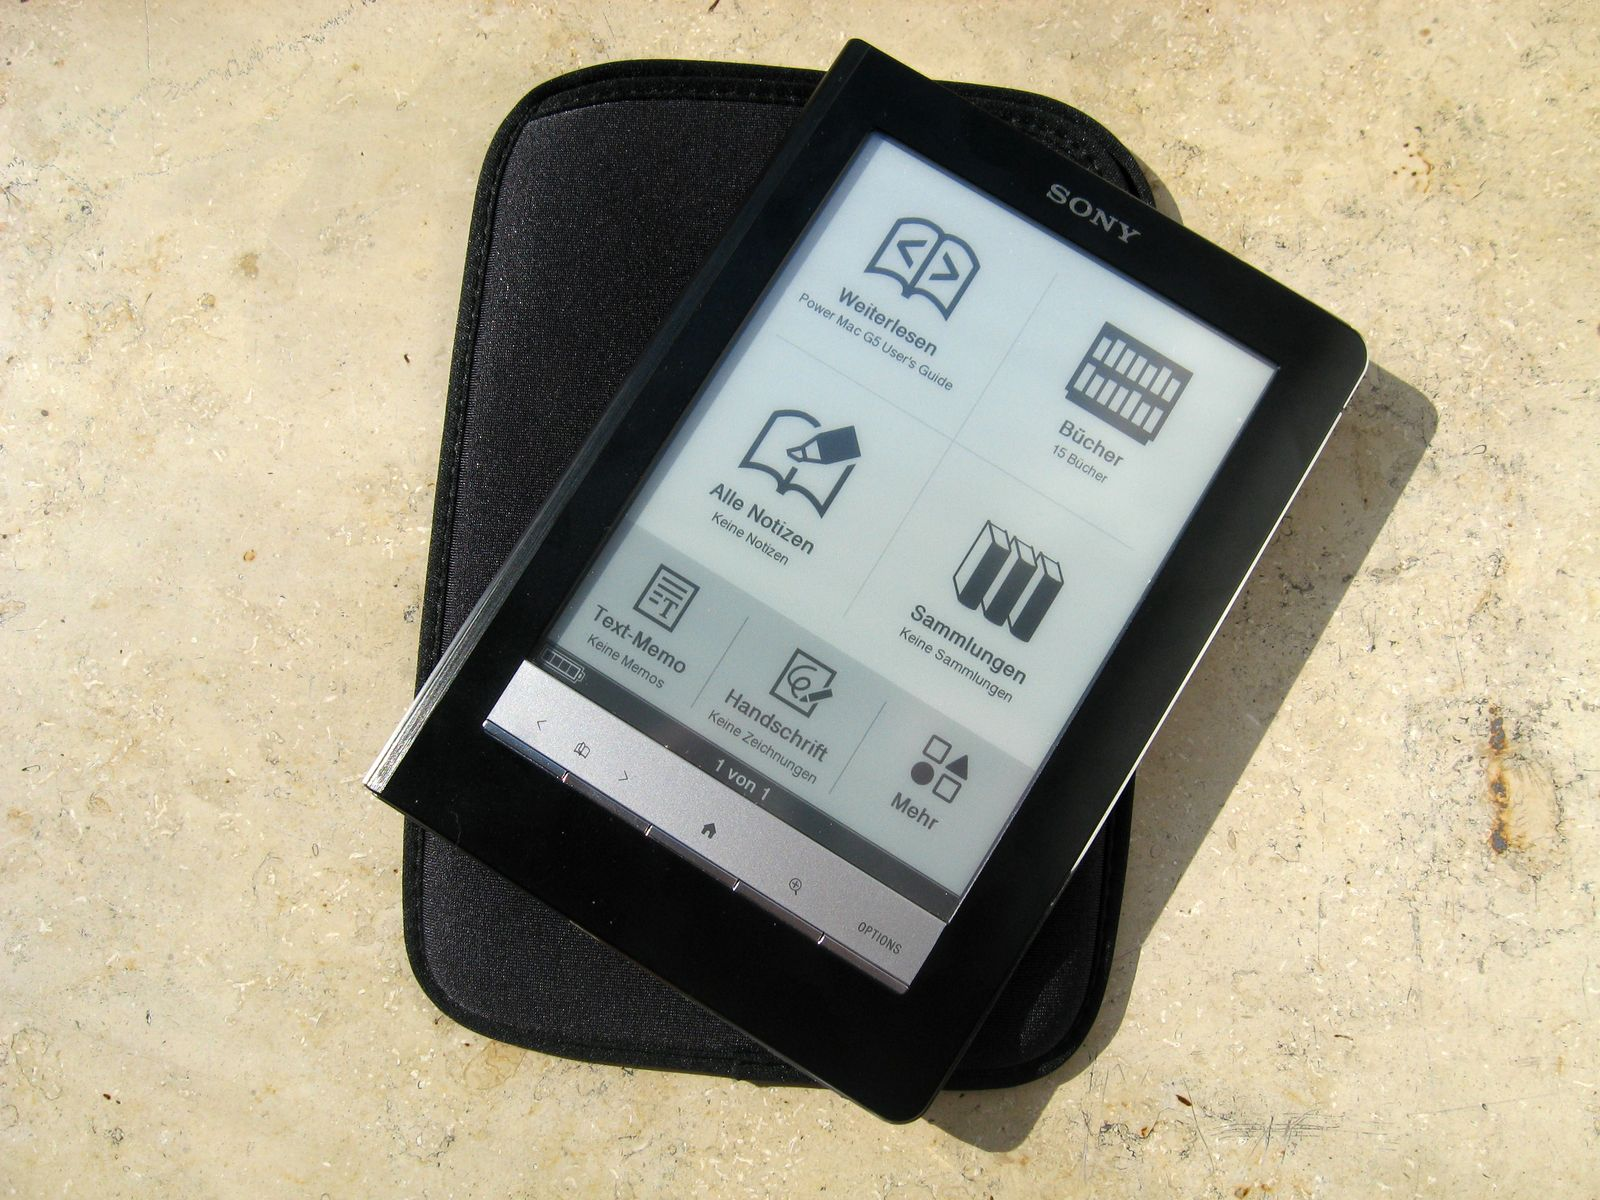 Sony eBook Reader PRS600 #7